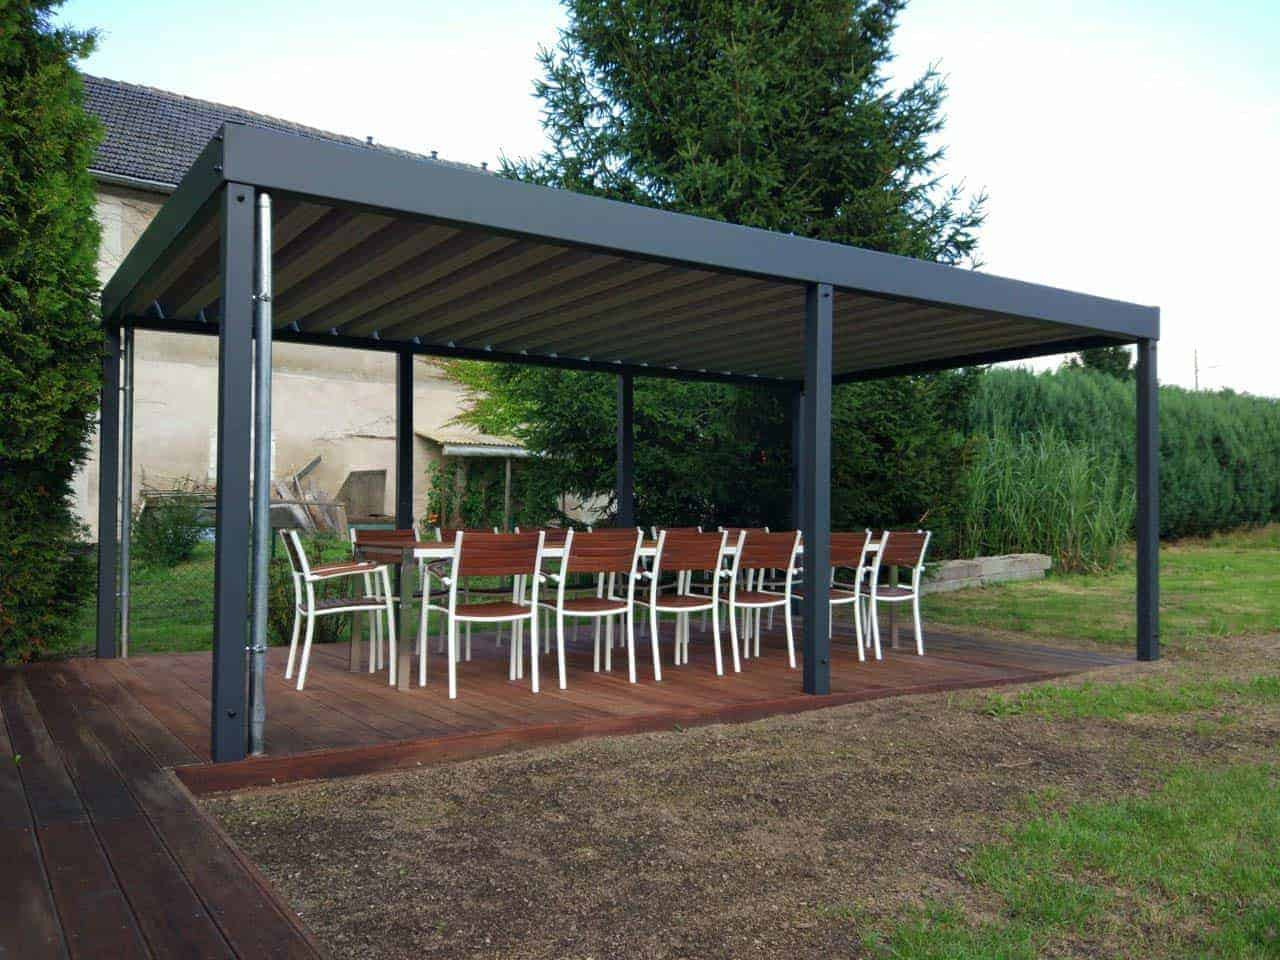 pavillon 3x6 stabil 3x6 4x8m partyzelt gartenzelt pavillon zelt grau wei second life. Black Bedroom Furniture Sets. Home Design Ideas